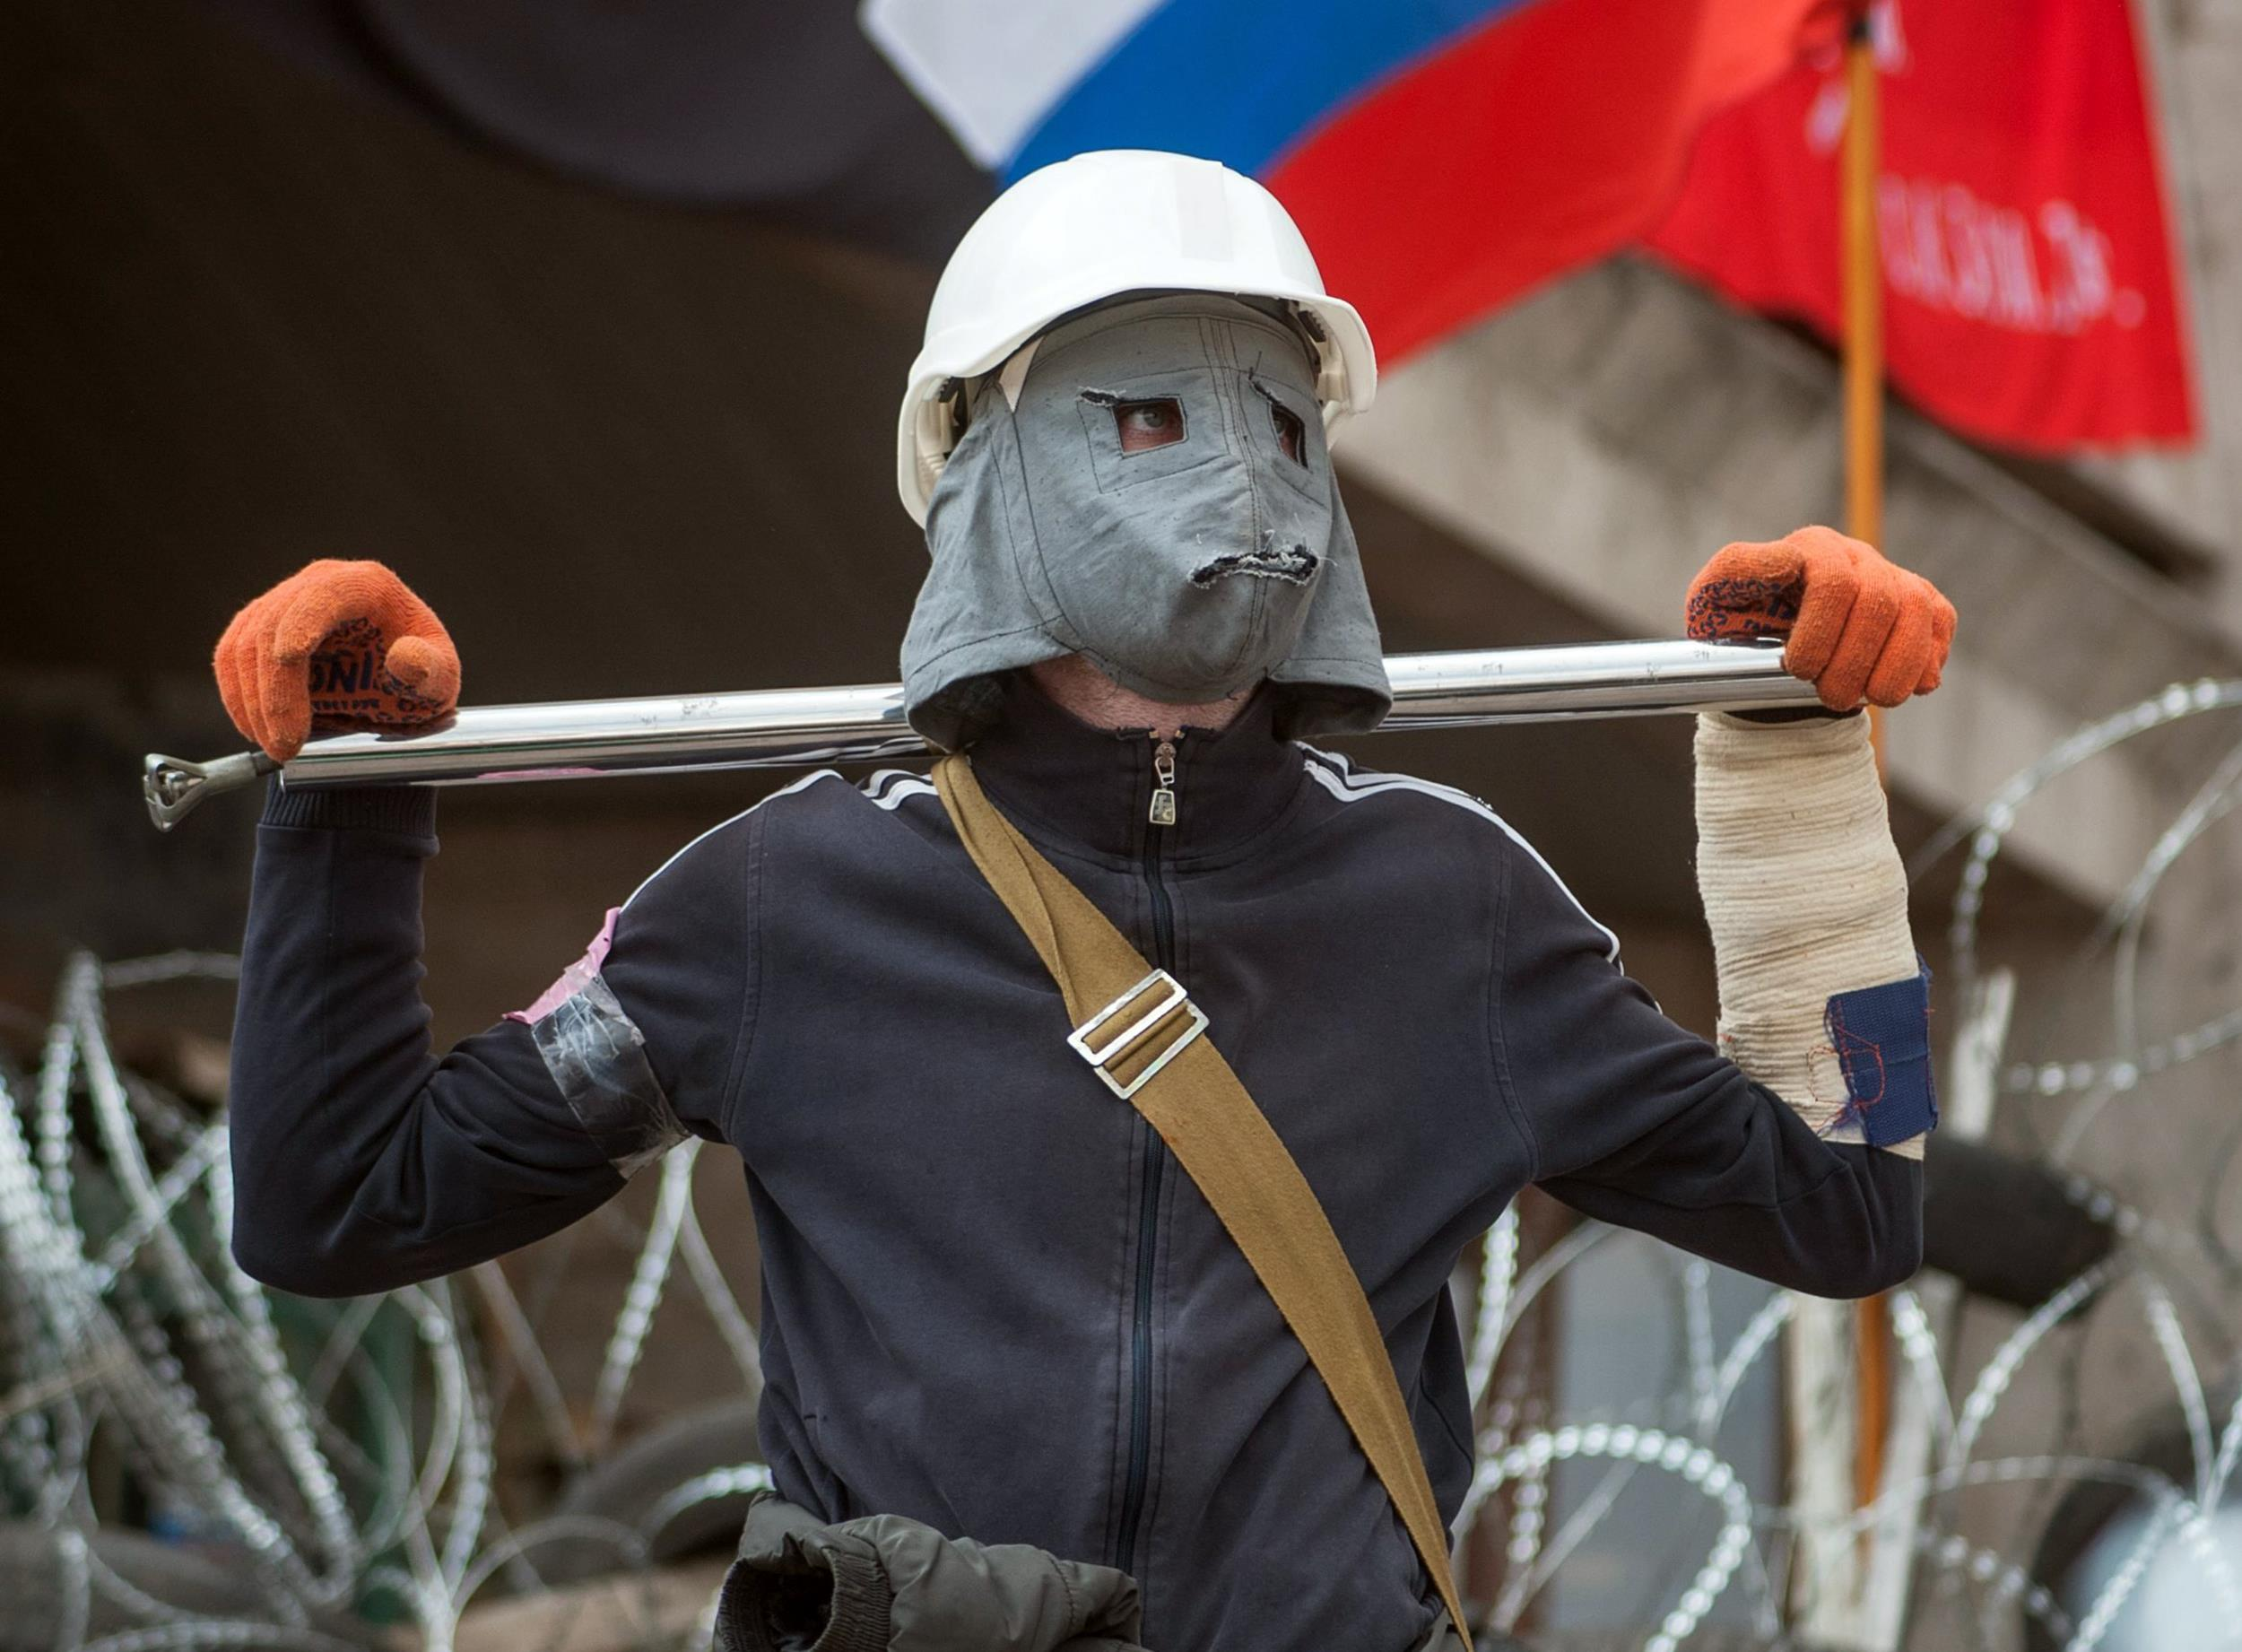 Image: A pro-Russian protester attends a rally in Donetsk.